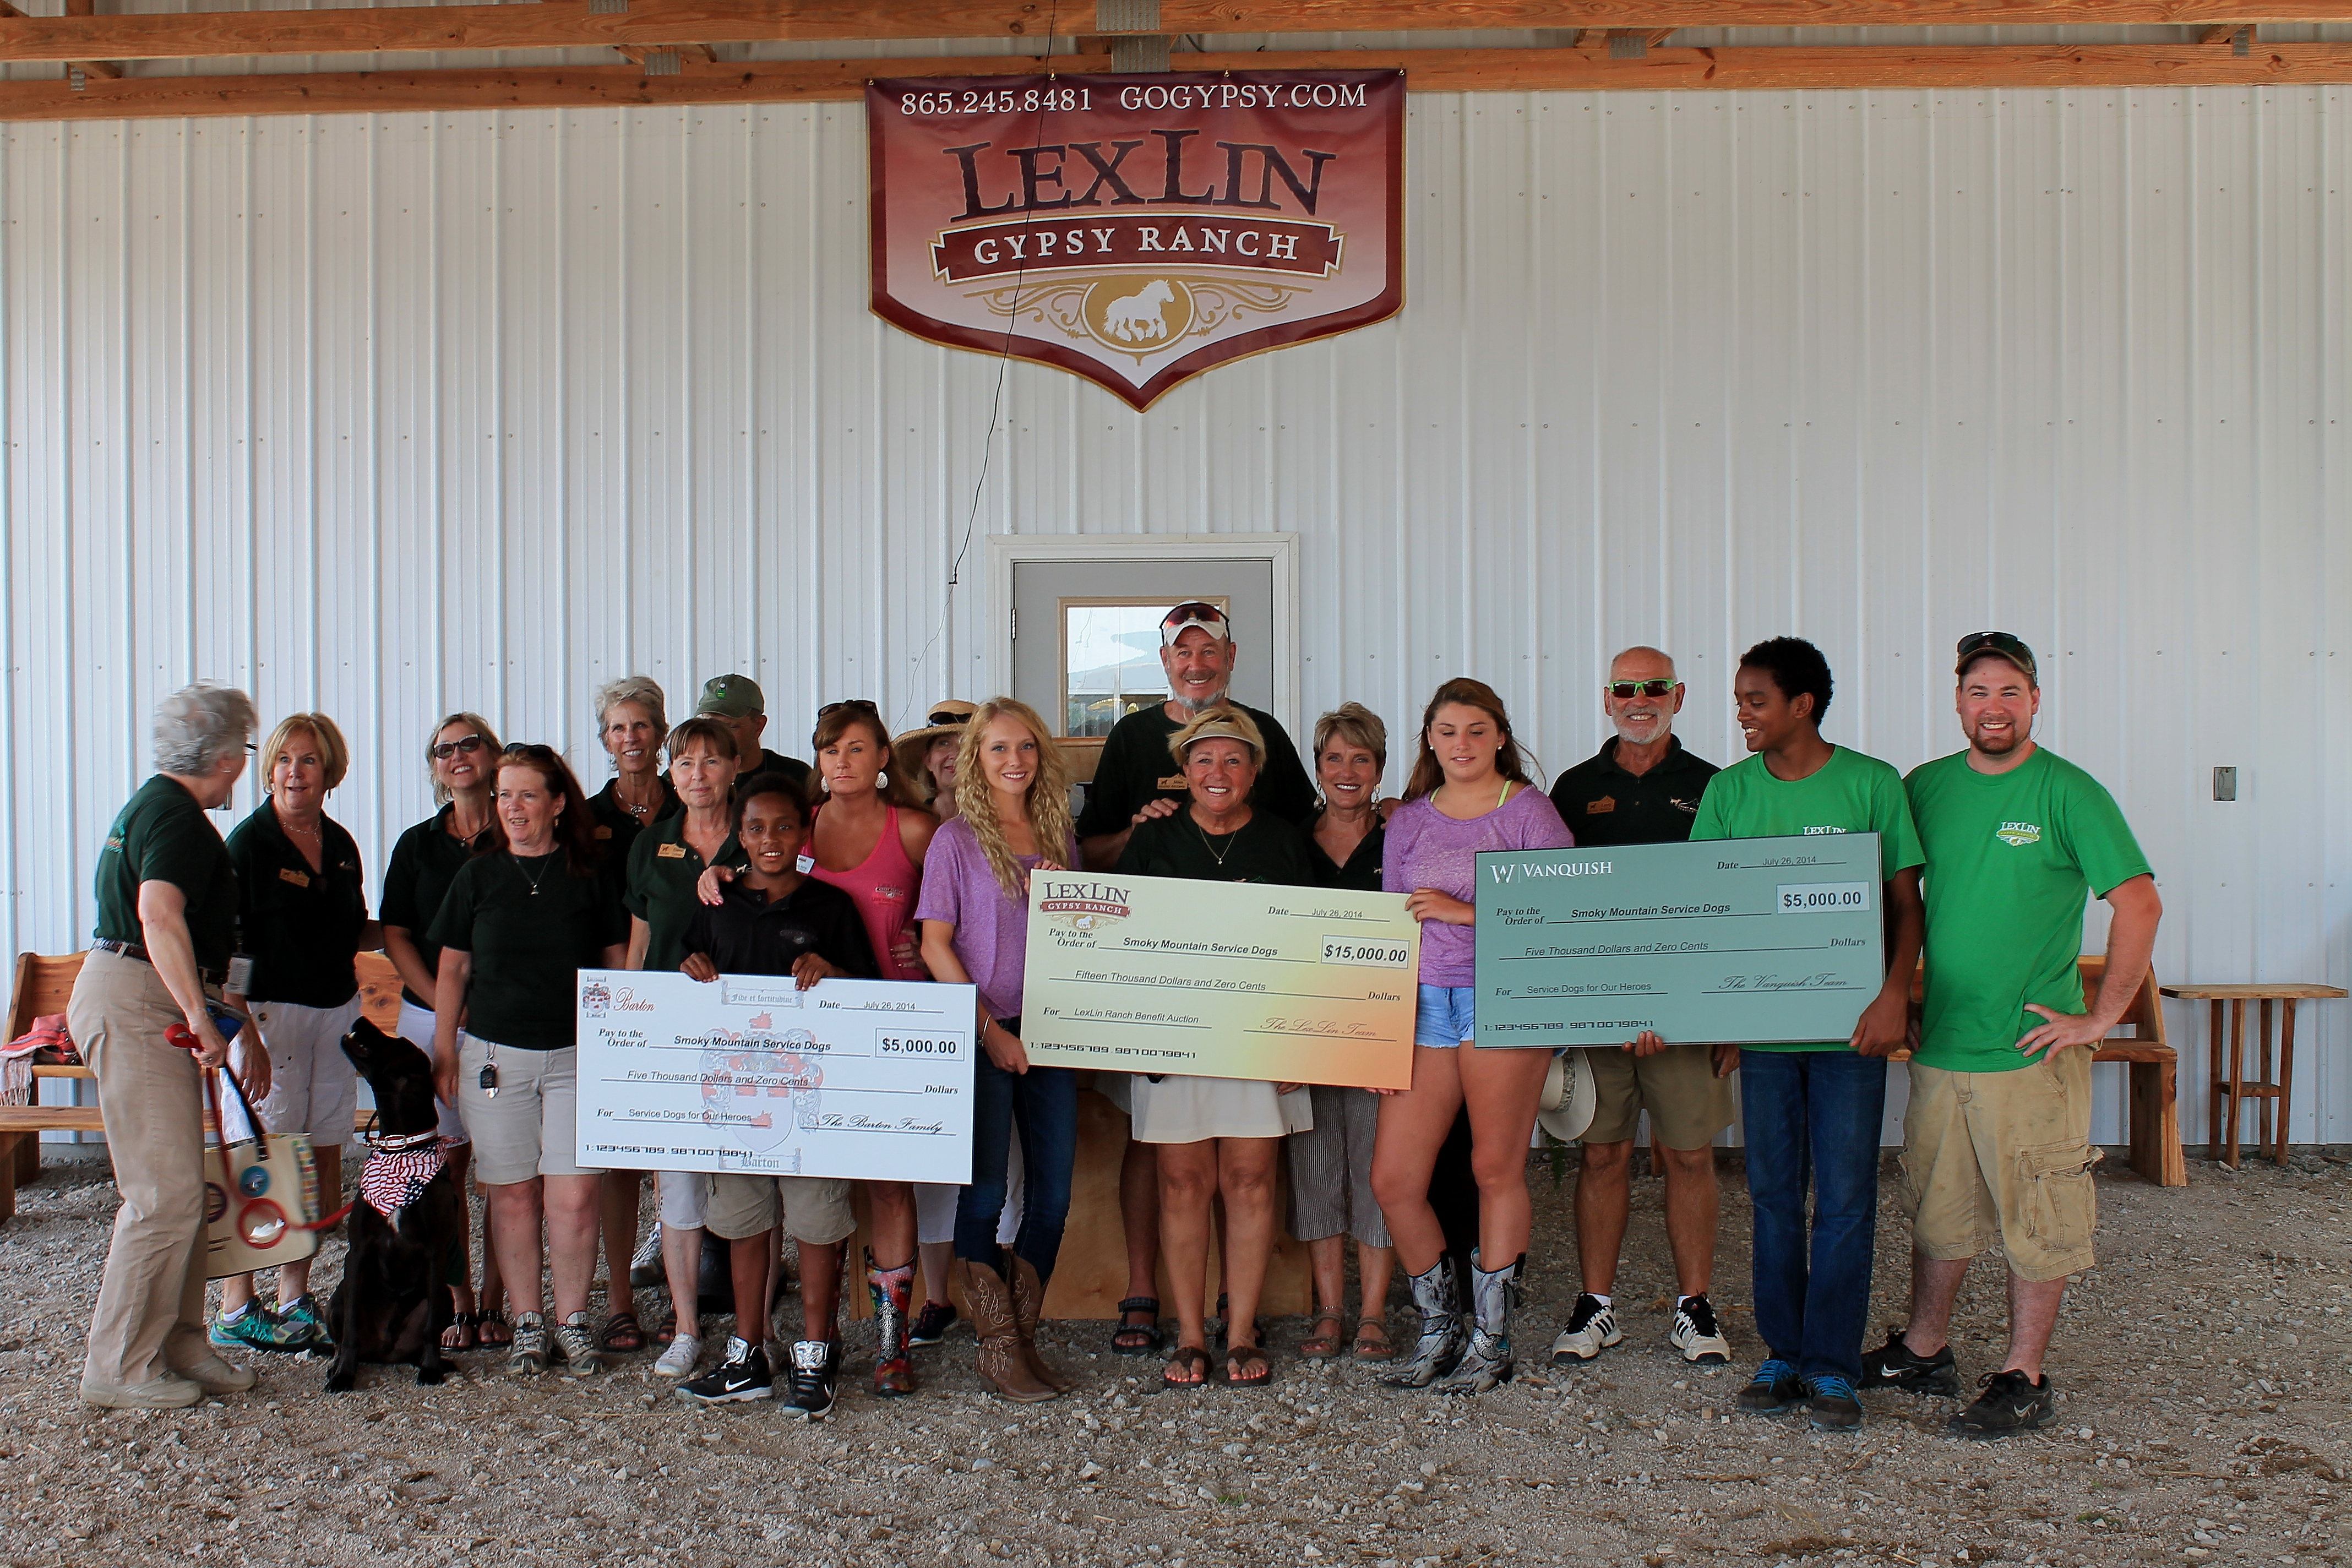 The Barton family, along with their companies LexLin Gypsy Ranch and Vanquish Worldwide make a donation to Smoky Mountain Service Dogs during a 2014 SMSD Benefit Auction at LexLin.